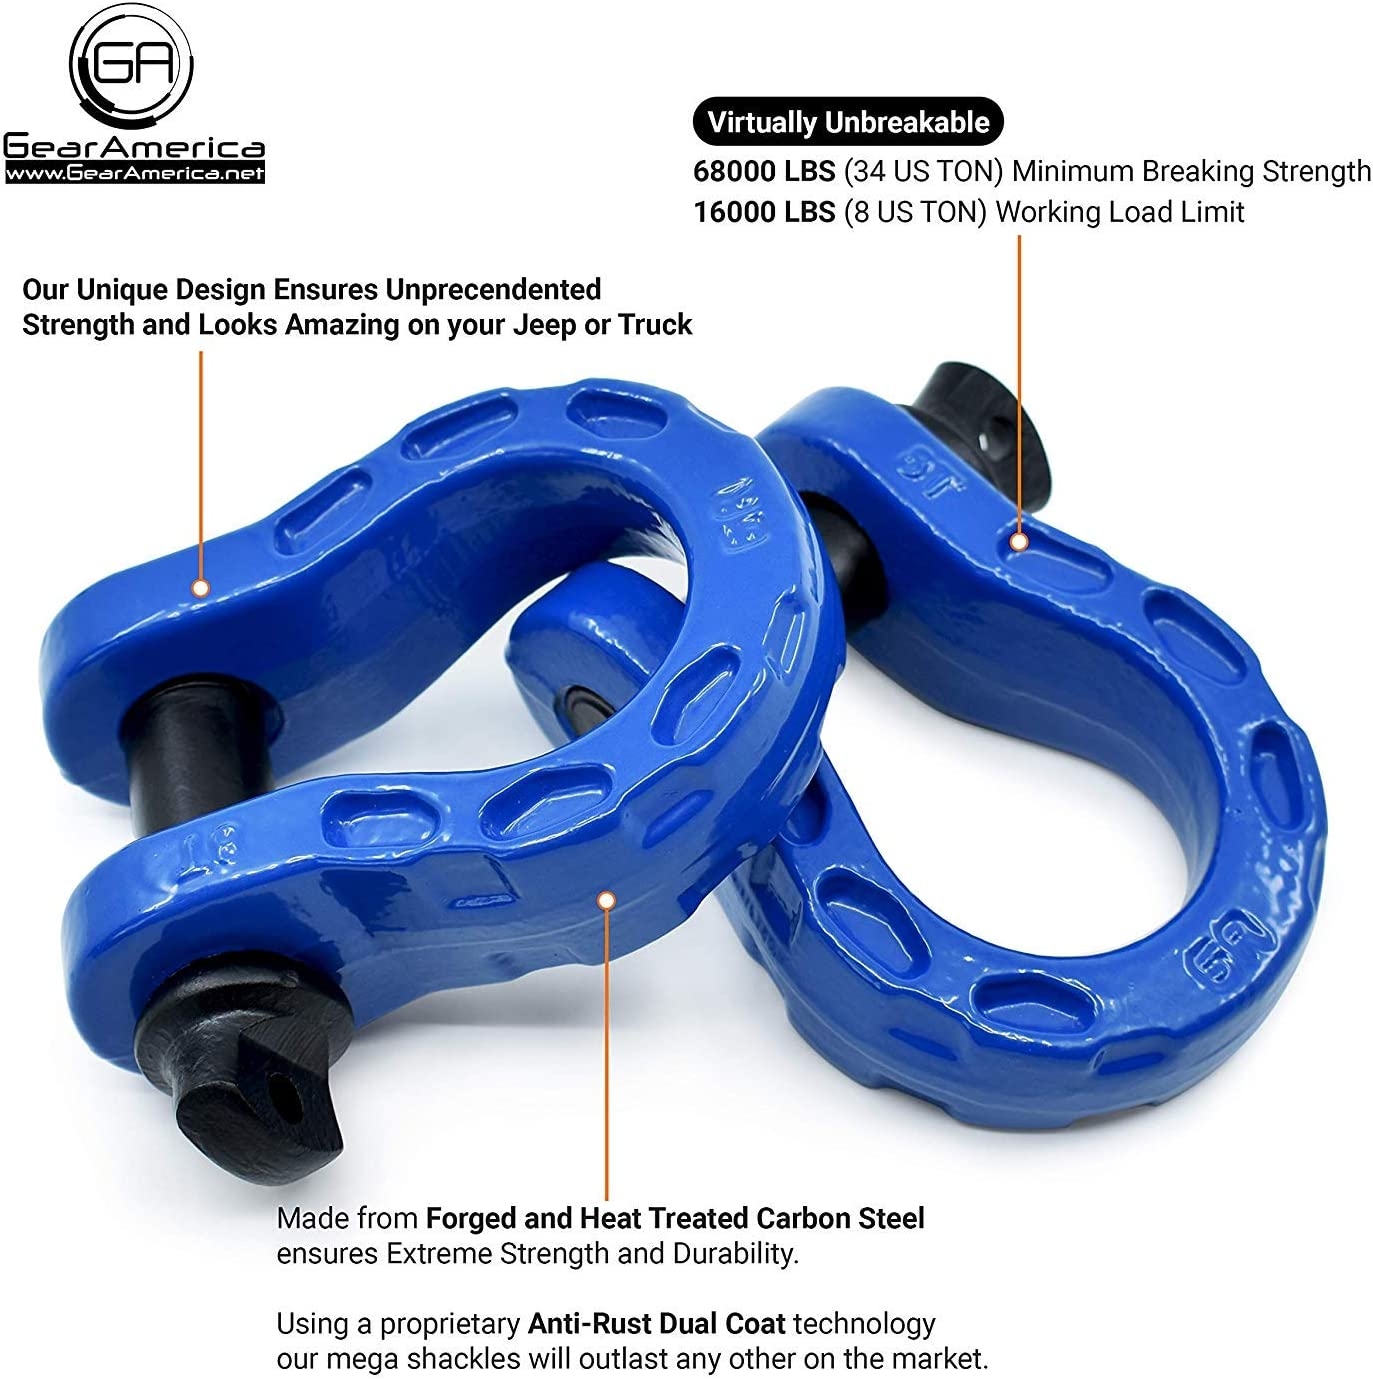 40T Red 80,000 lbs GearAmerica UBER D Ring Shackles with Anti Theft Lock Strength 2PK UBERLock Security Pin 7//8 Connect Tow Strap or Winch Rope for Off-Road Recovery Washers Tow Rings